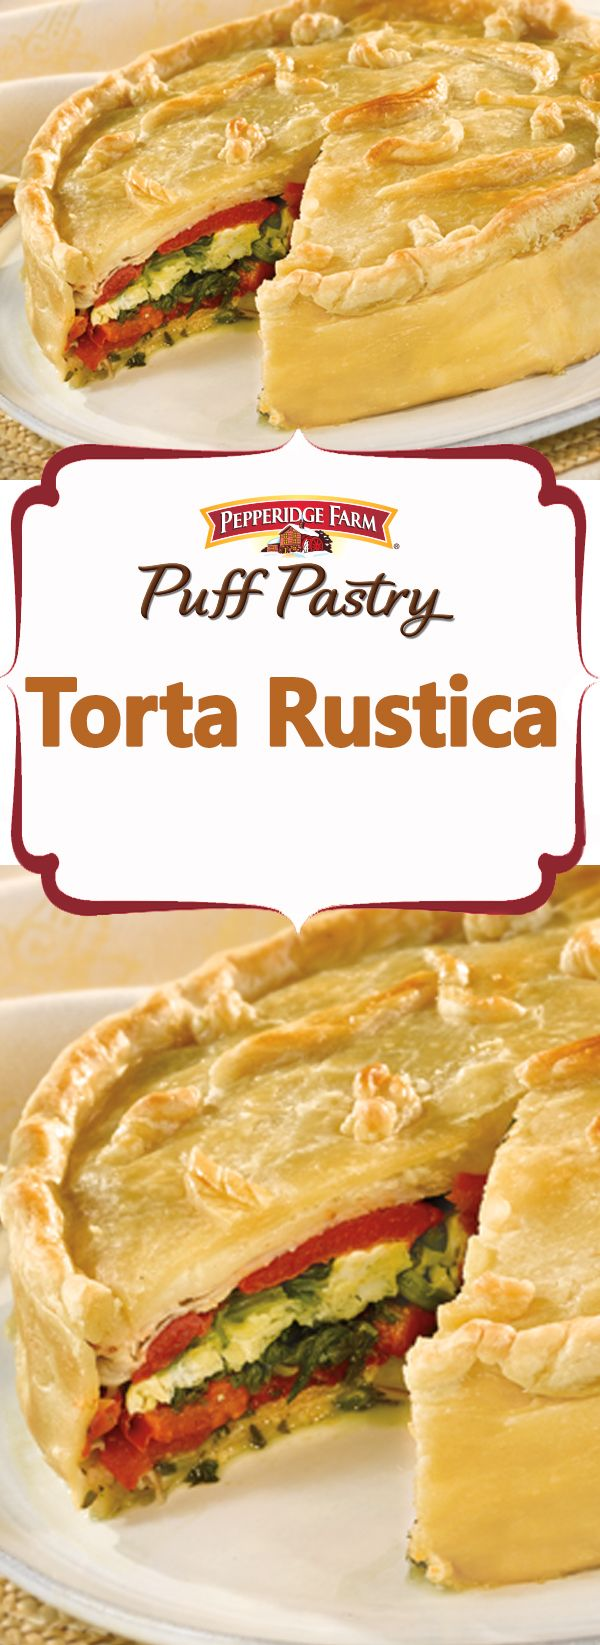 Pepperidge Farm Puff Pastry Torta Rustica Recipe. Served at room temperature, this delectable torta makes a beautiful presentation for a holiday or special meal.  It looks complicated, but takes only 30 minutes to assemble, and you can make it ahead of the party! Your guests will be delighted with the fabulous combination of cheese, egg, meat and vegetables all encased in flaky Puff Pastry.